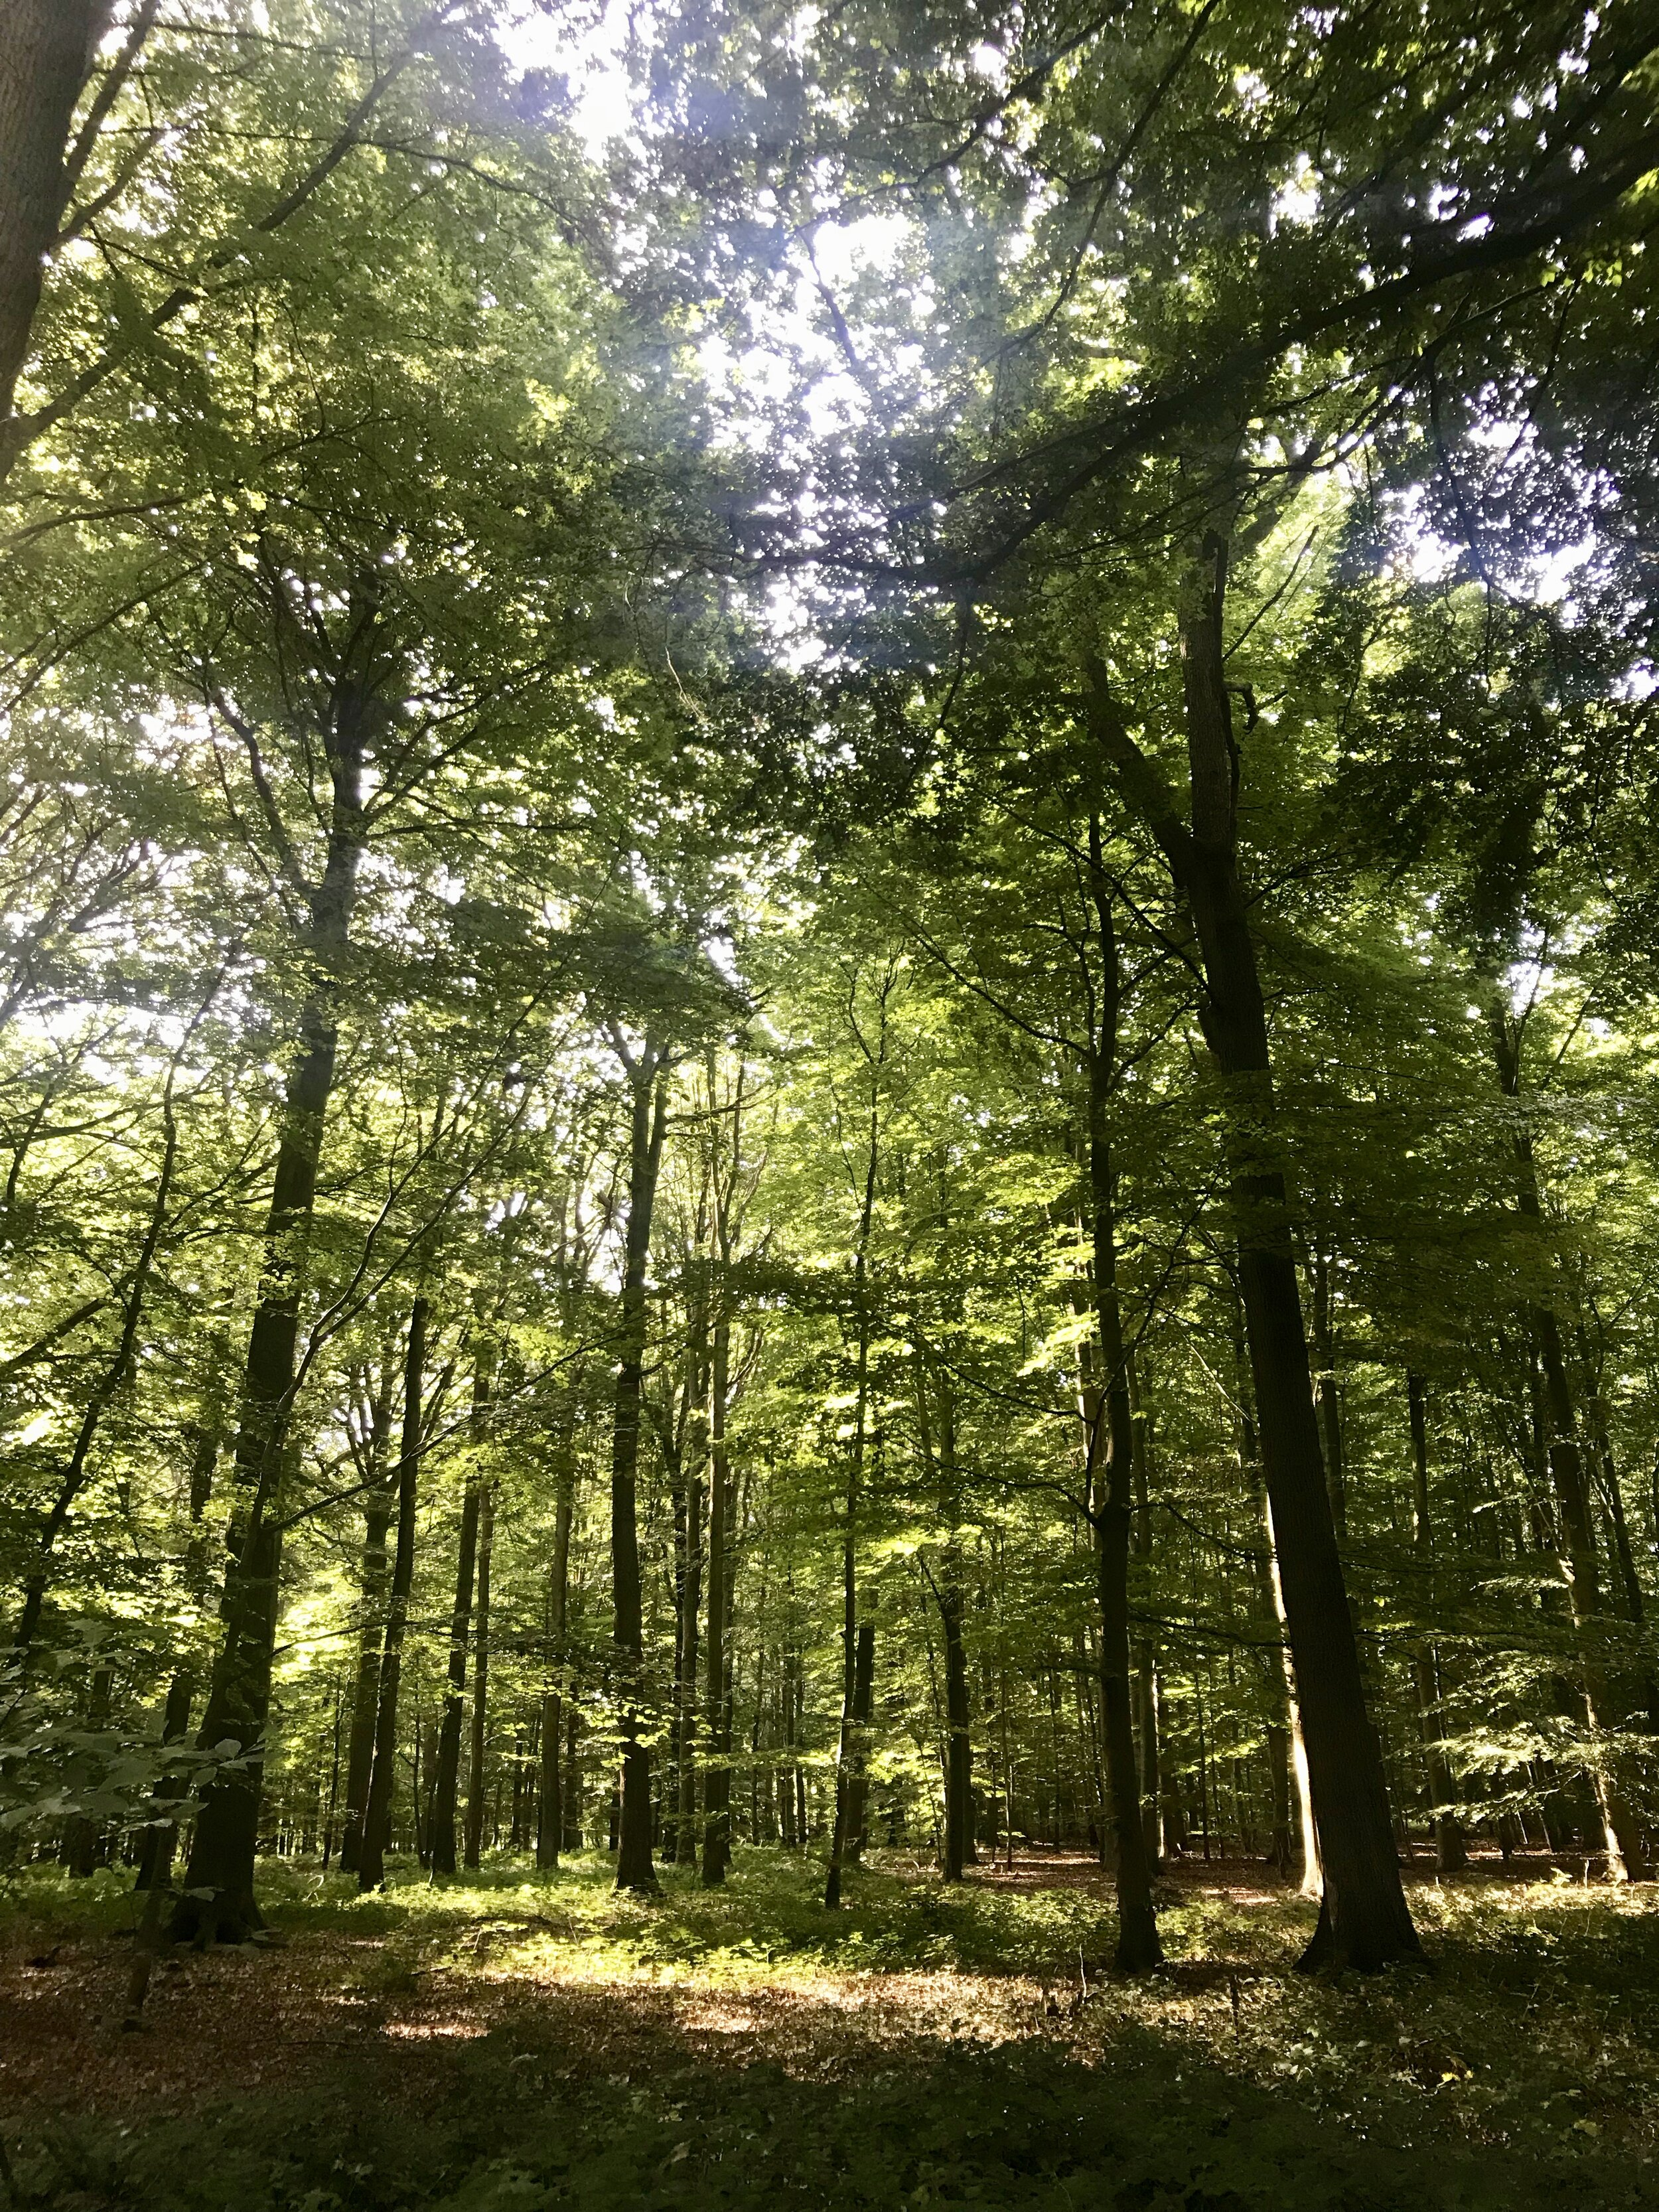 's morgens buggenhout bos